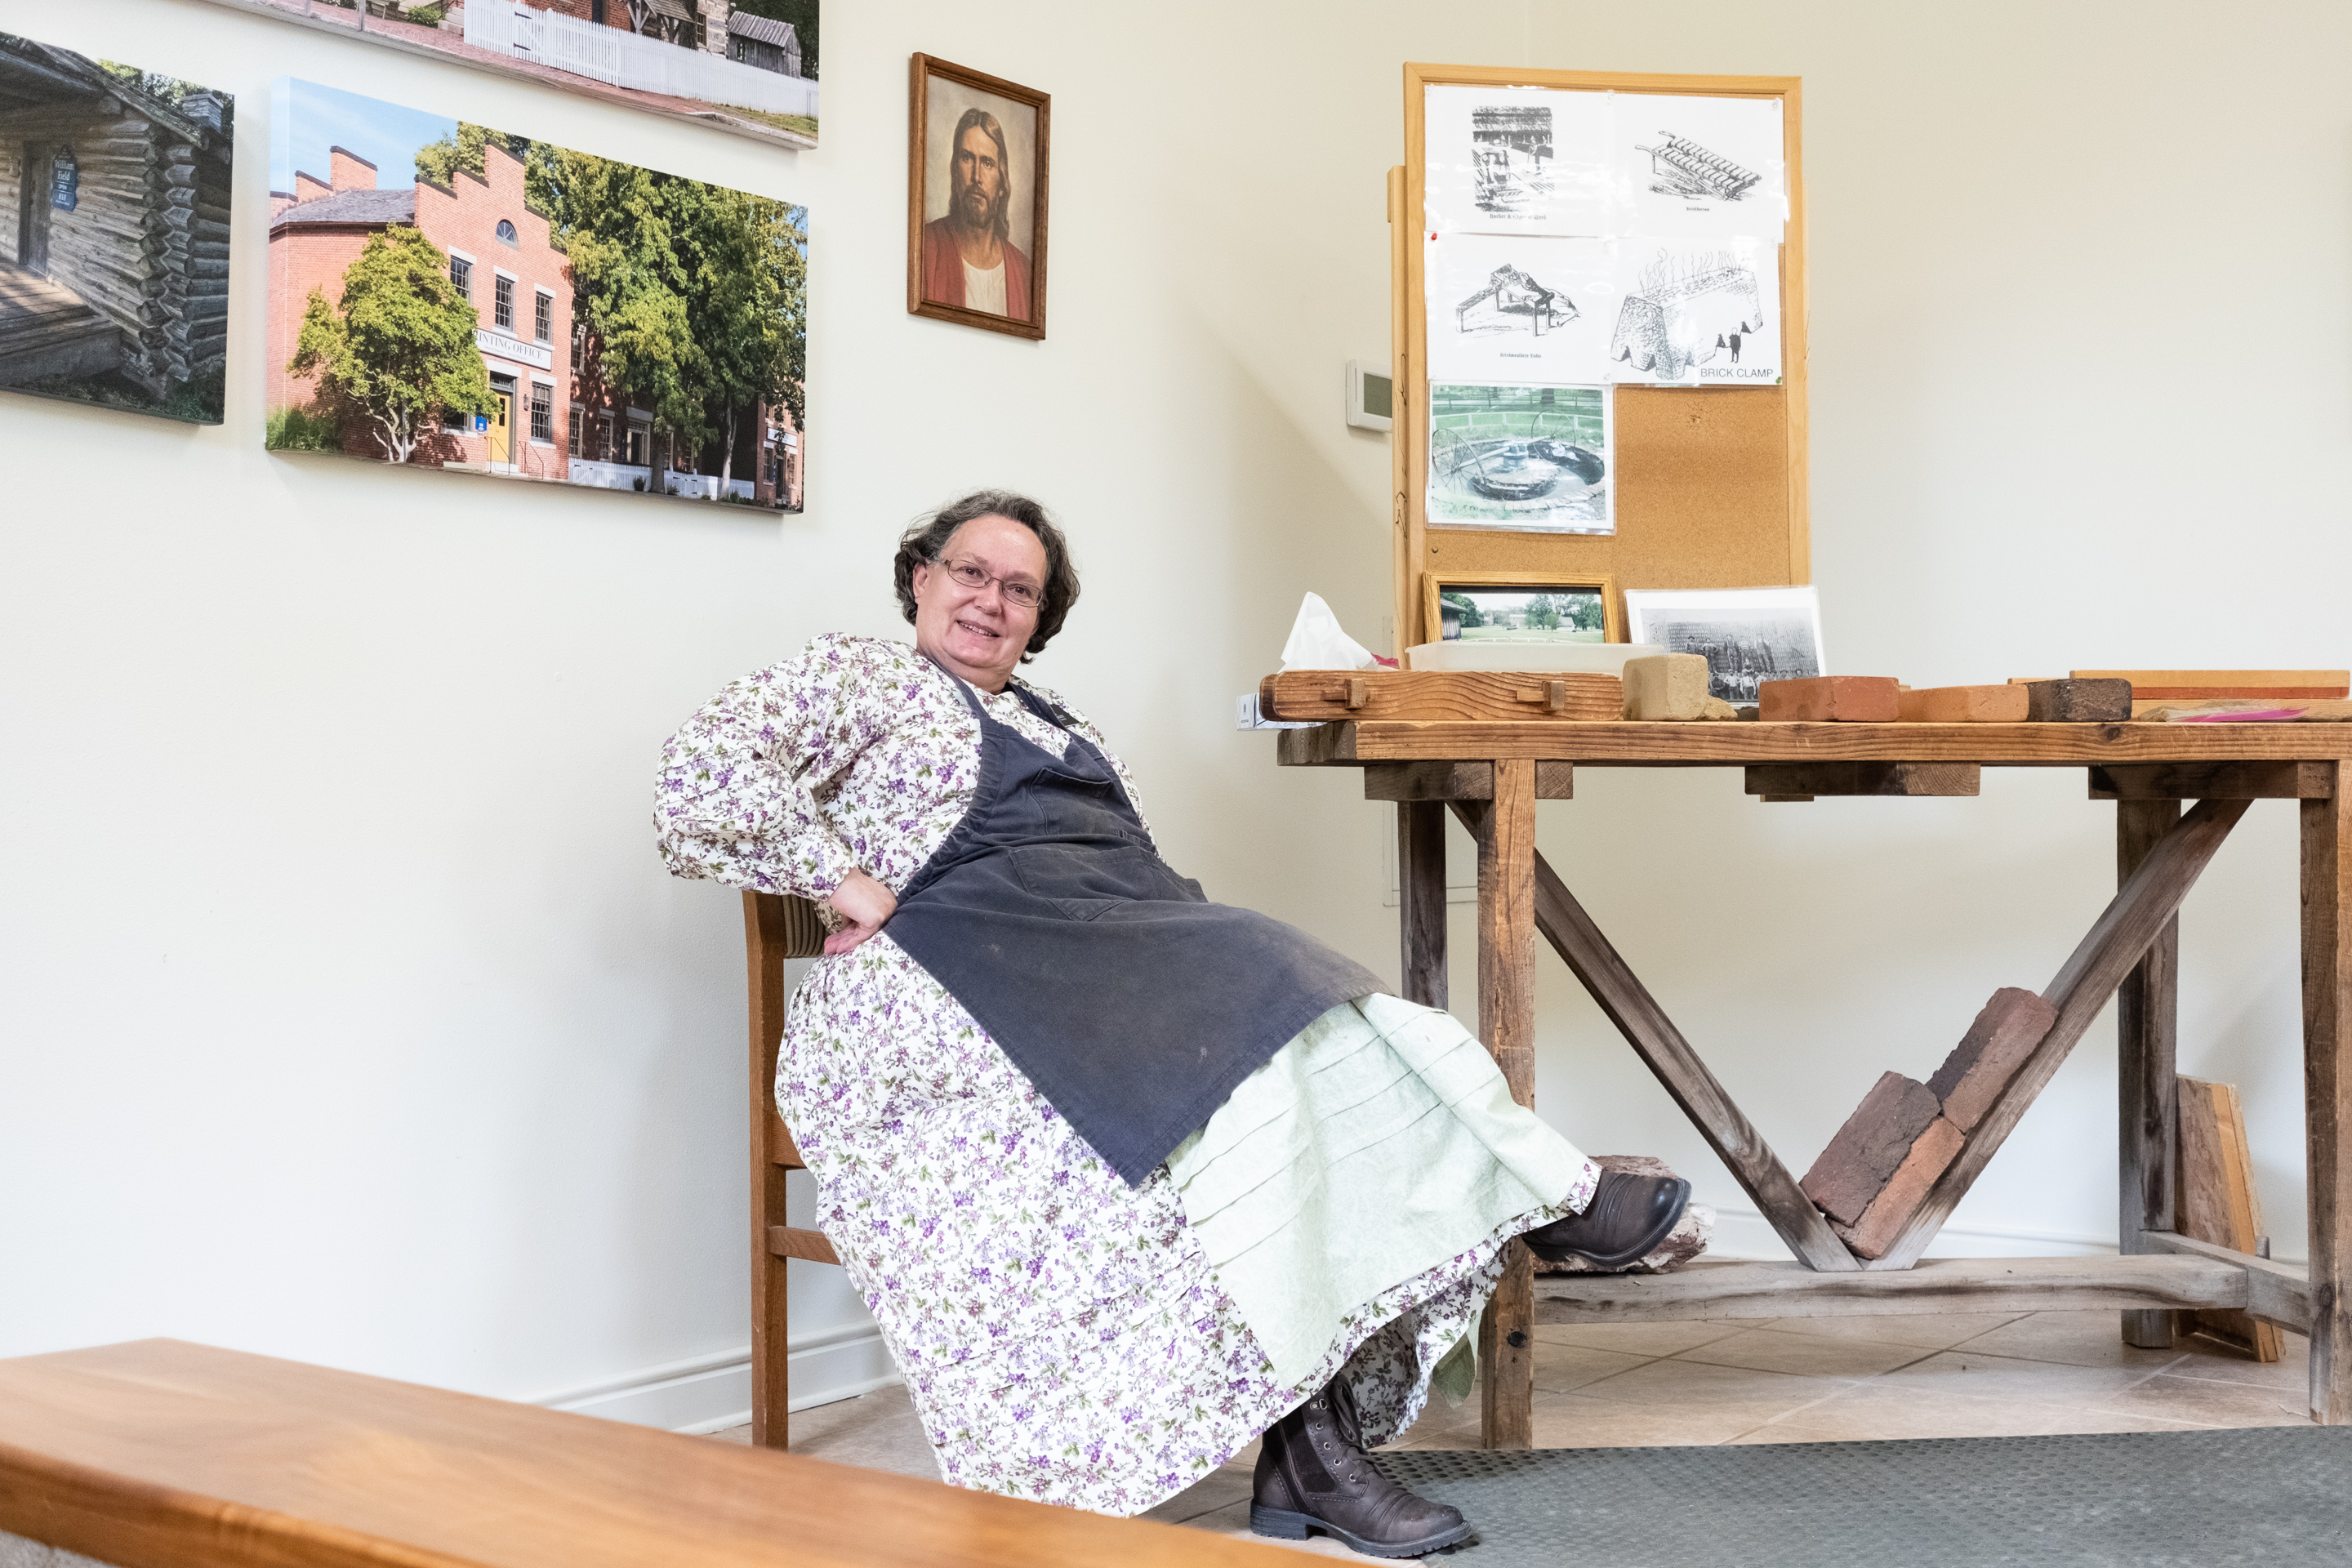 Sister Missionary at the Brickyard in Historic Nauvoo, Nauvoo, IL 2019